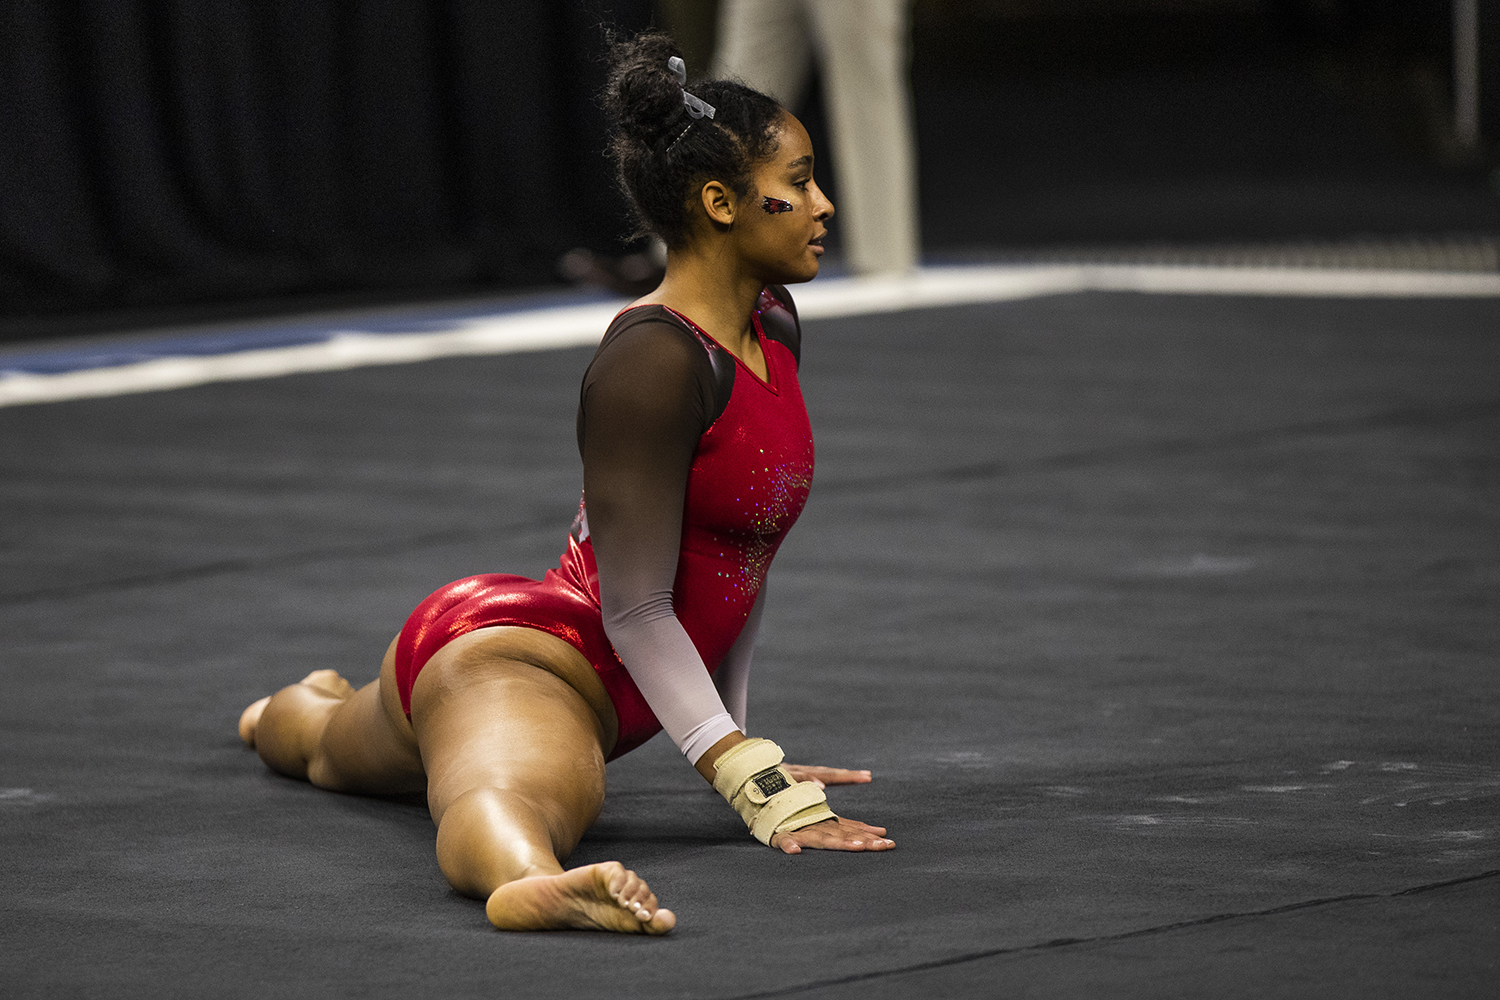 SEMO+gymnast+Gabrielle+Adams+performs+on+the+floor+during+the+women%27s+gymnastics+meet+vs.+SEMO+at+Carver-Hawkeye+Arena+on+Friday%2C+January+11%2C+2019.+The+GymHawks+defeated+the+Redhawks+194.700-180.925.+